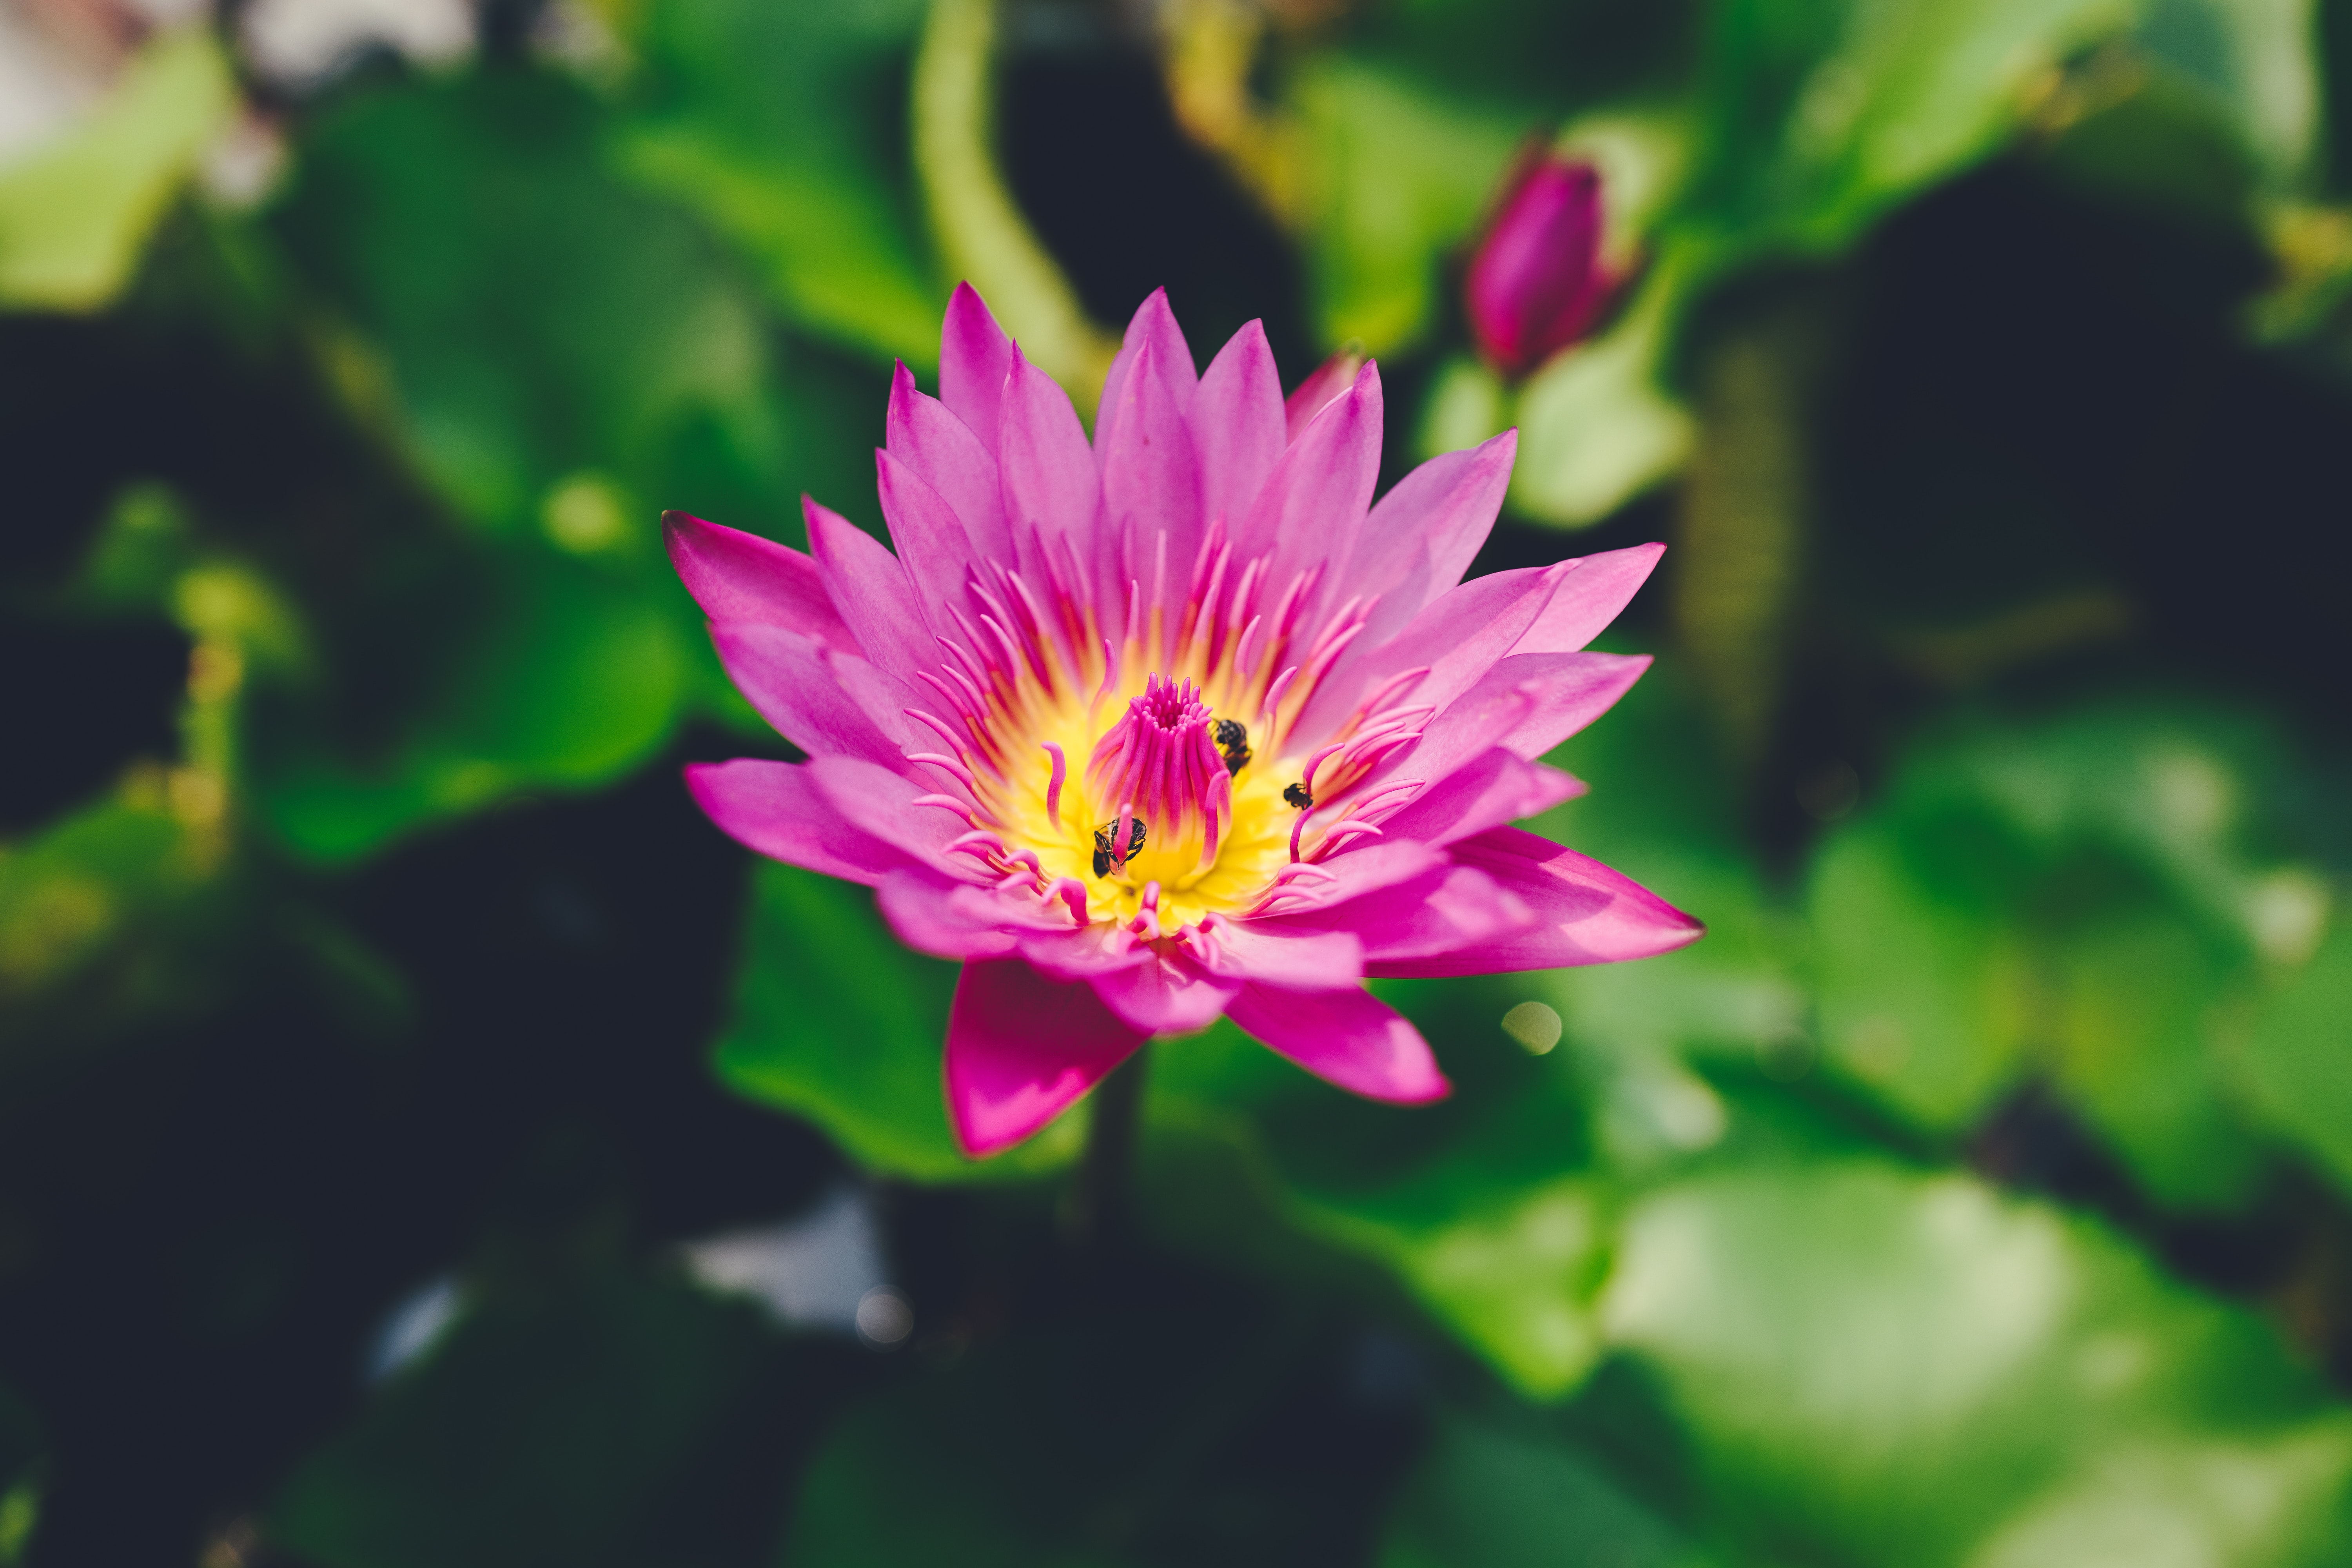 focus photography of pink petaled flower